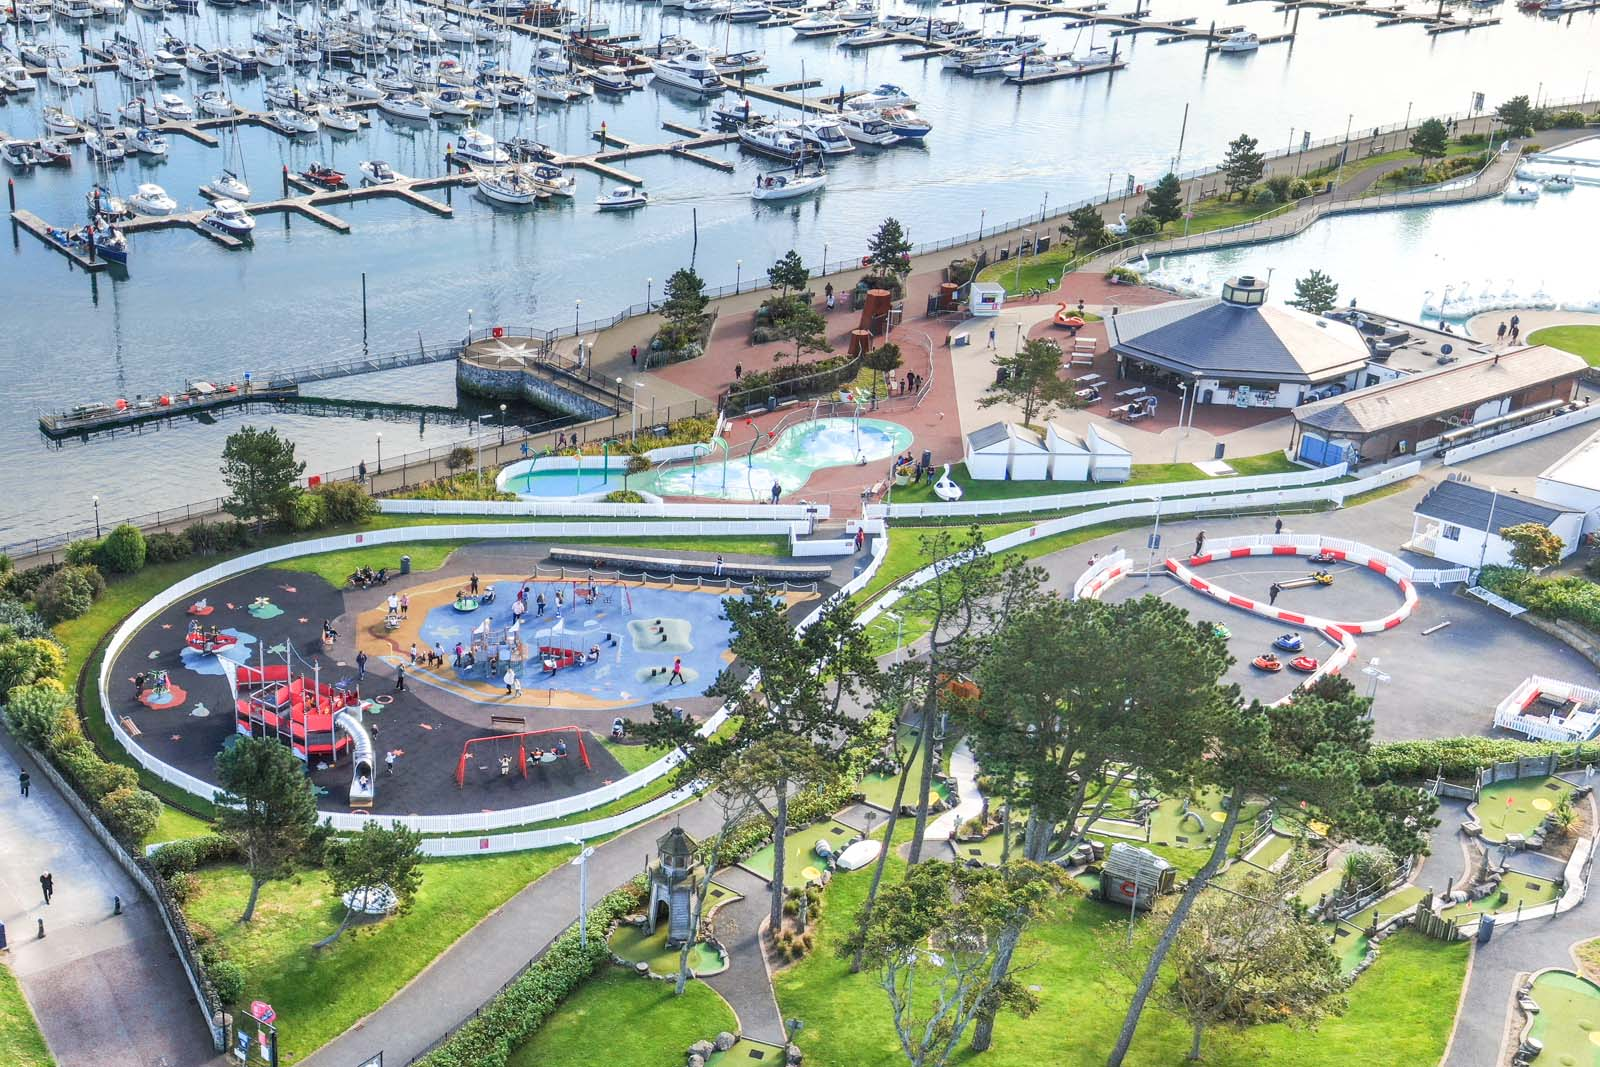 Aerial photo of Bangor Marina and Pickie Fun Park by Bout Yeh drone photography and video production services, Belfast and Northern Ireland - photo 0149-3